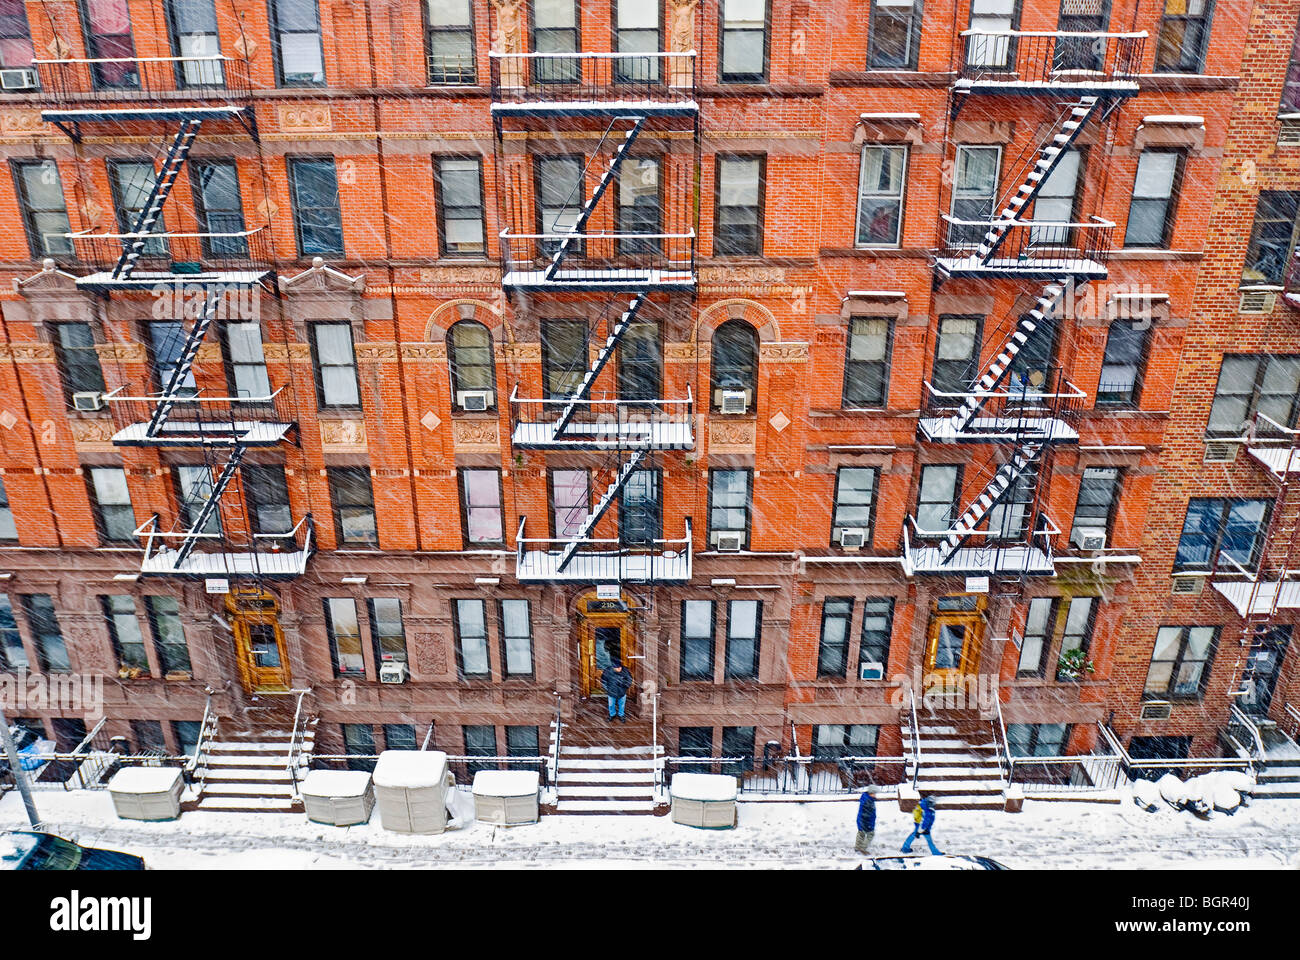 Tenement Apartment Buildings In New York City During Winter Snowstorm